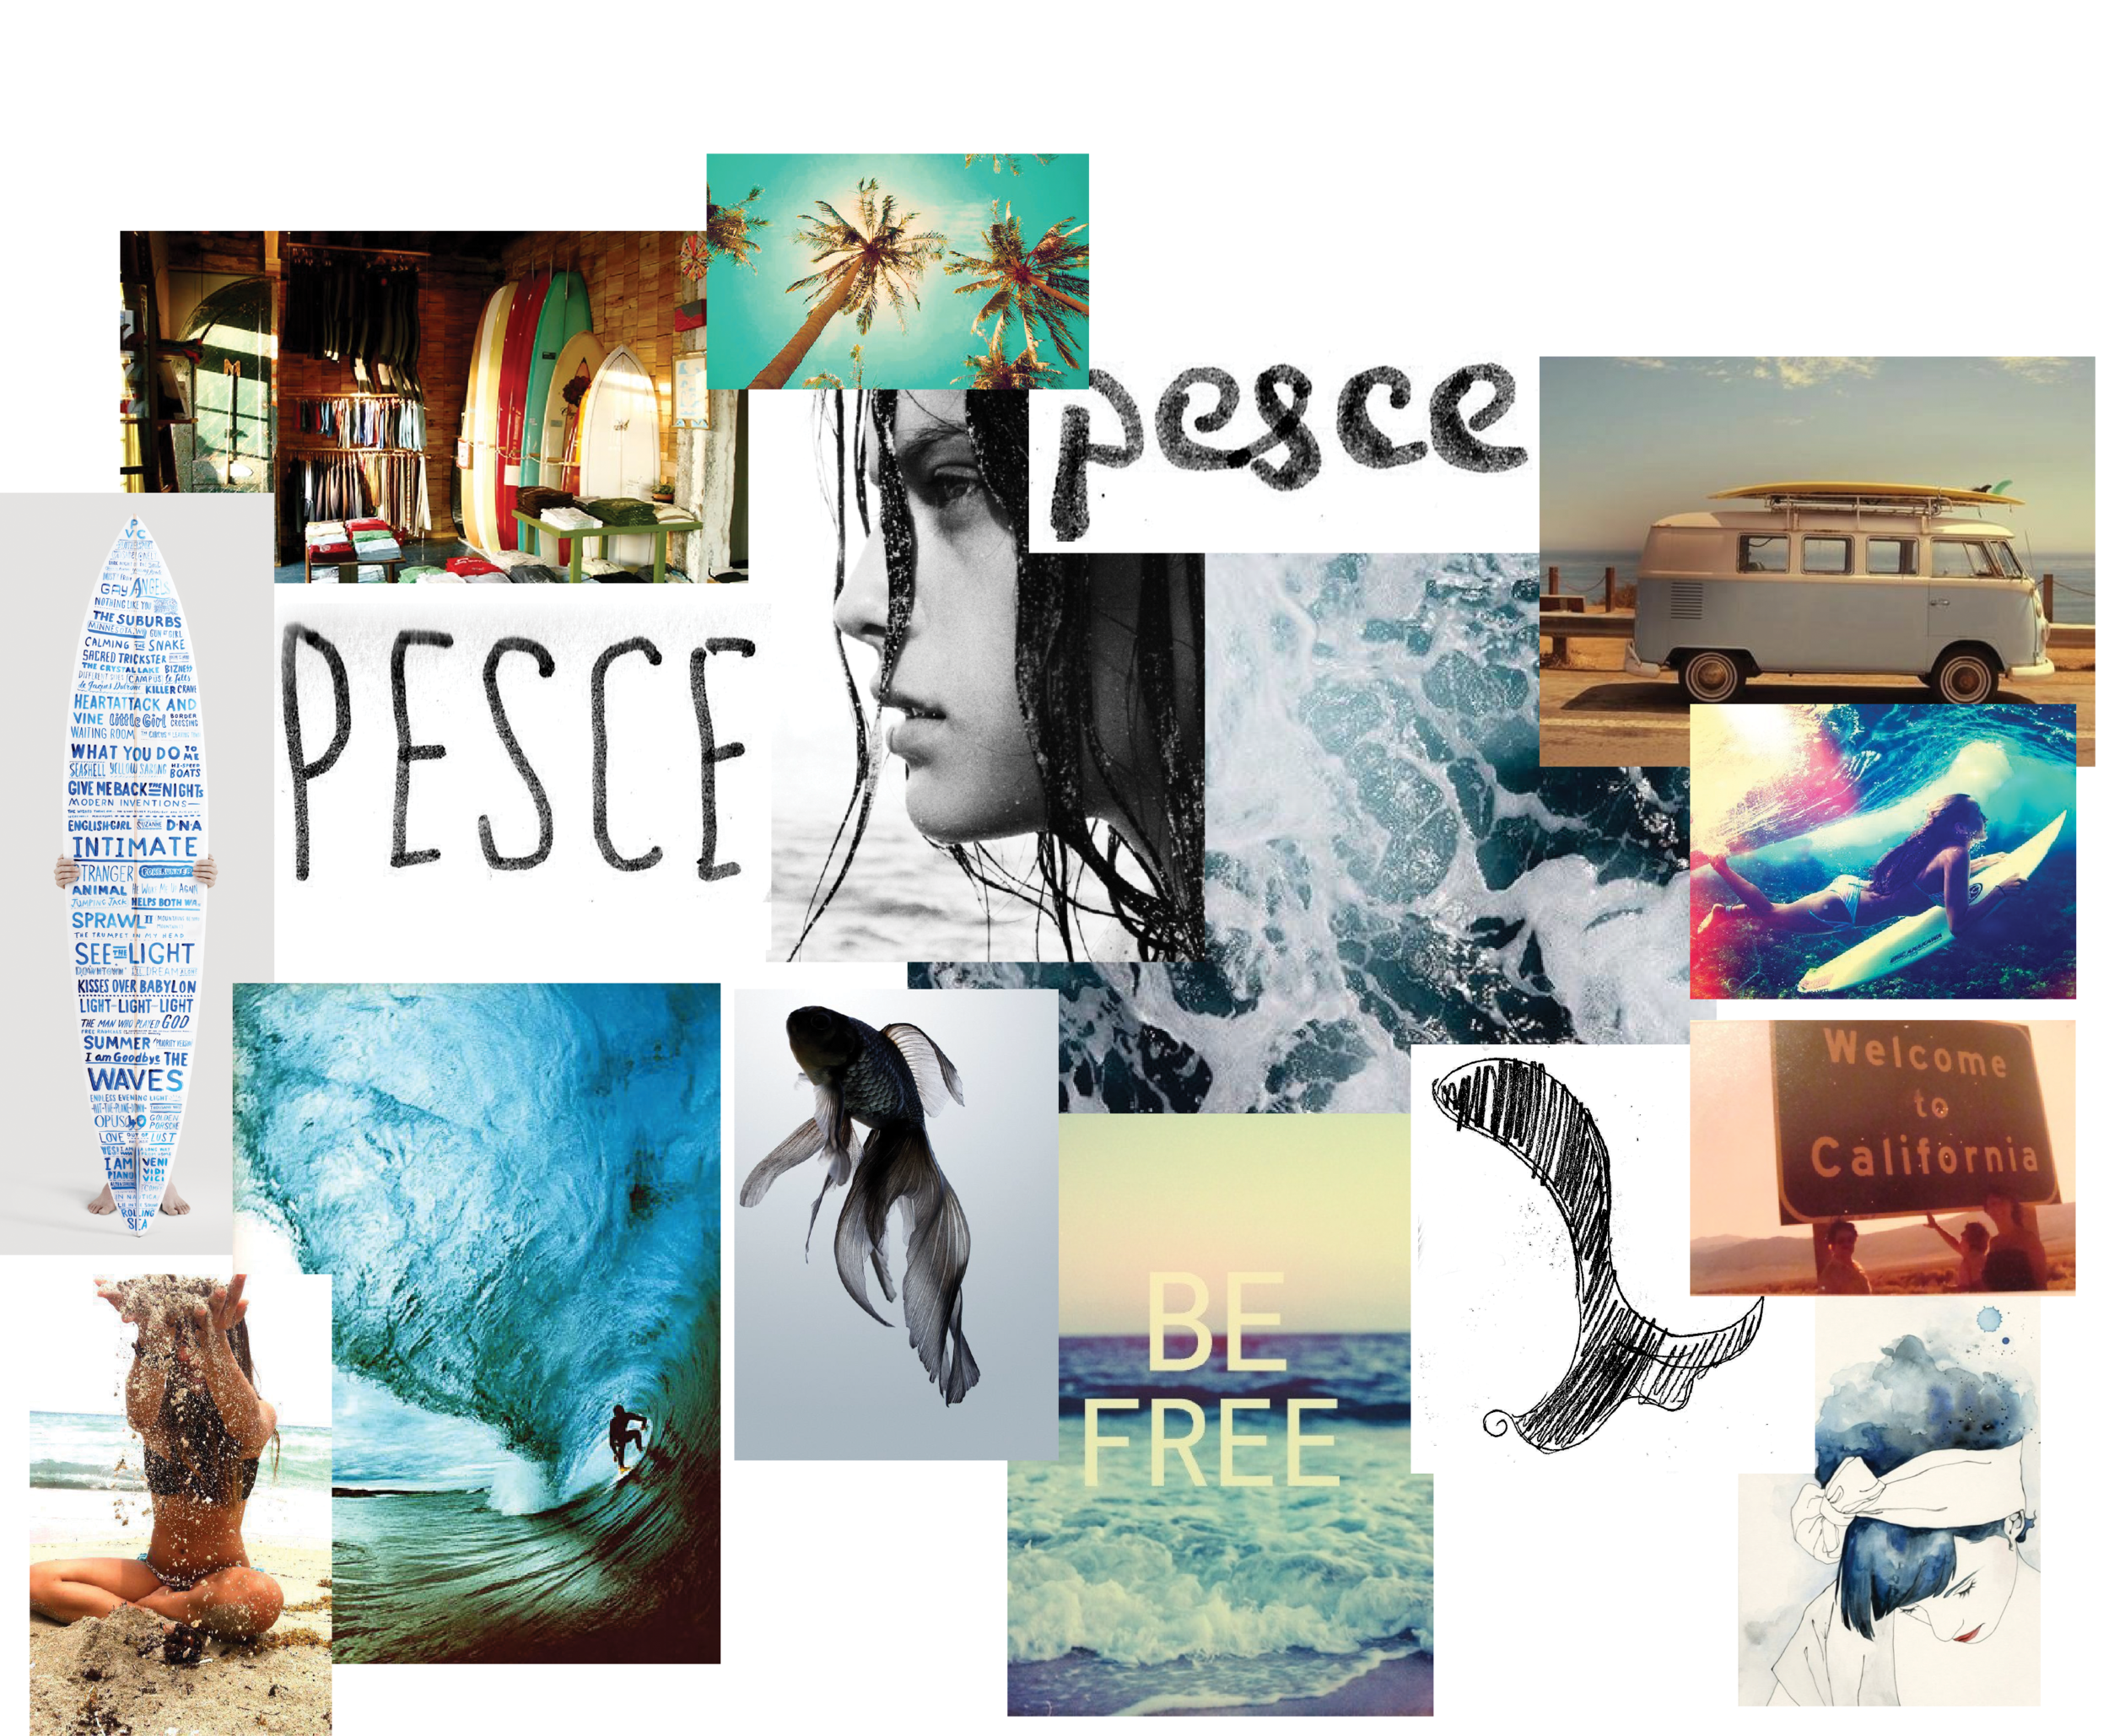 A mood board that demonstrates the intended look and feel for the surf shop through inspirational images and sketches.